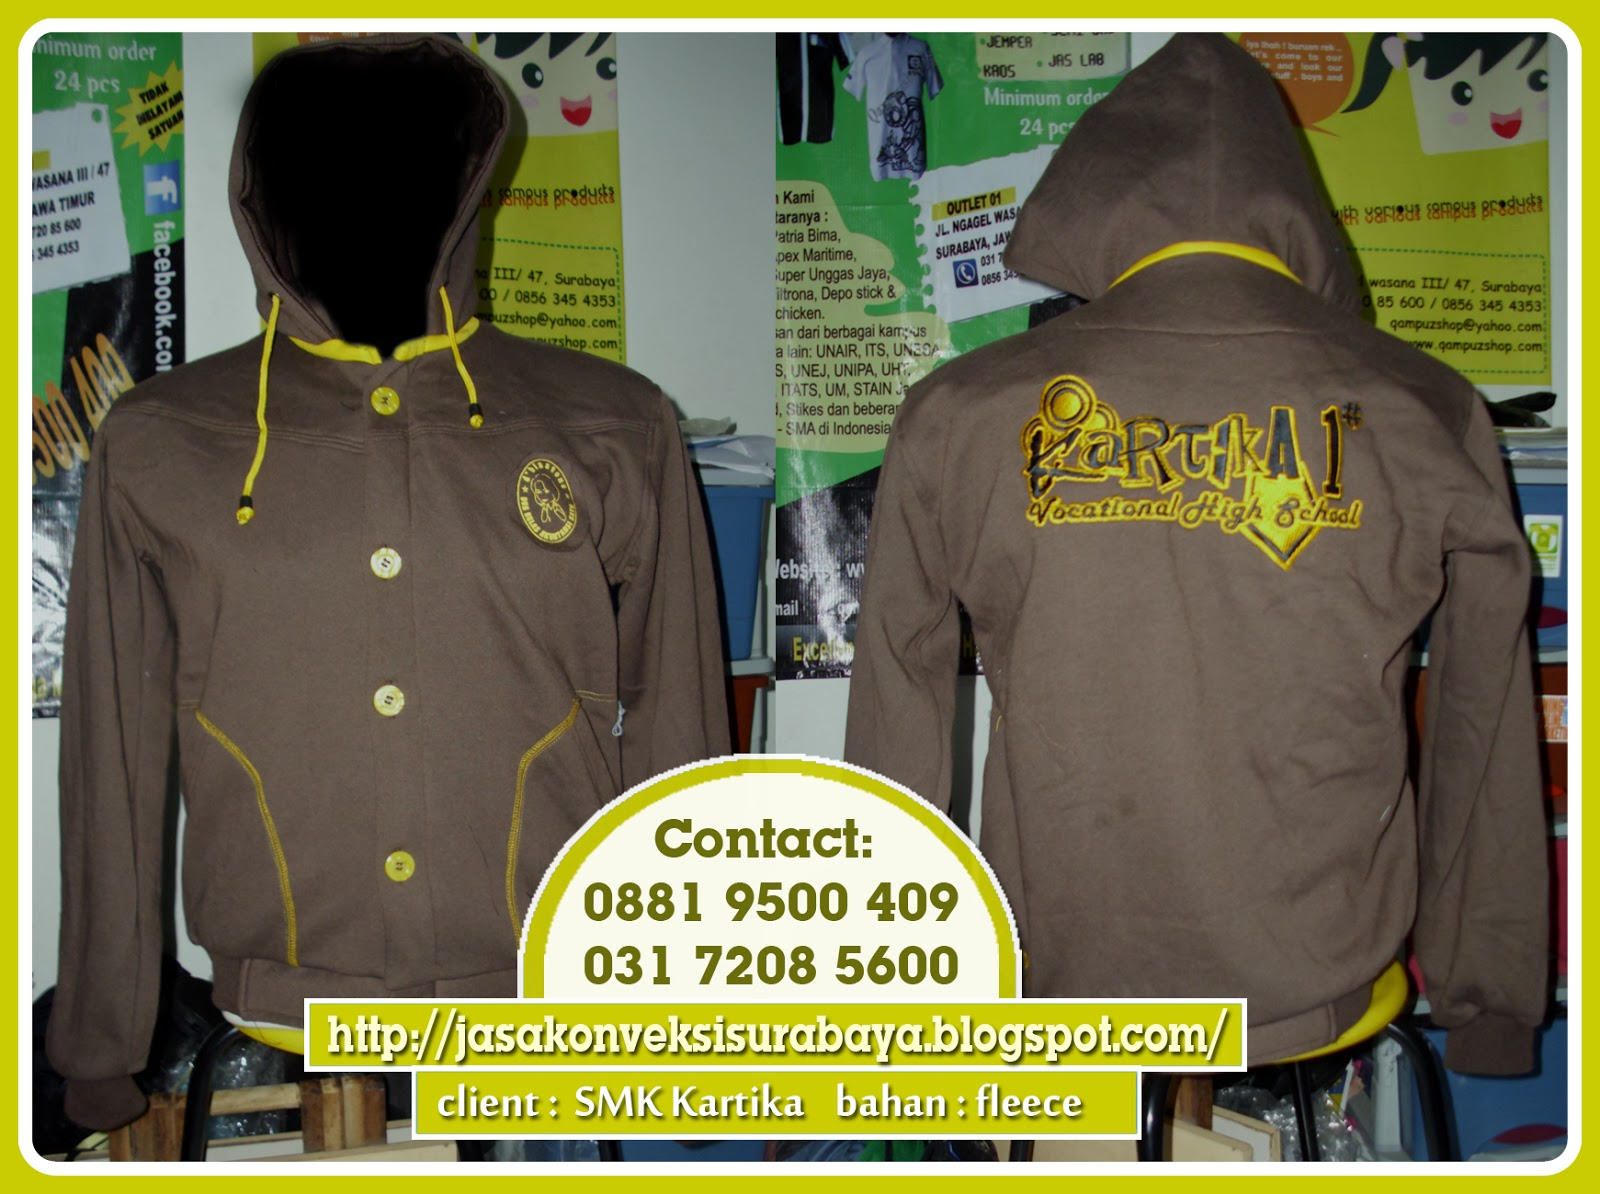 jasa konveksi supplier jaket bordir disurabaya